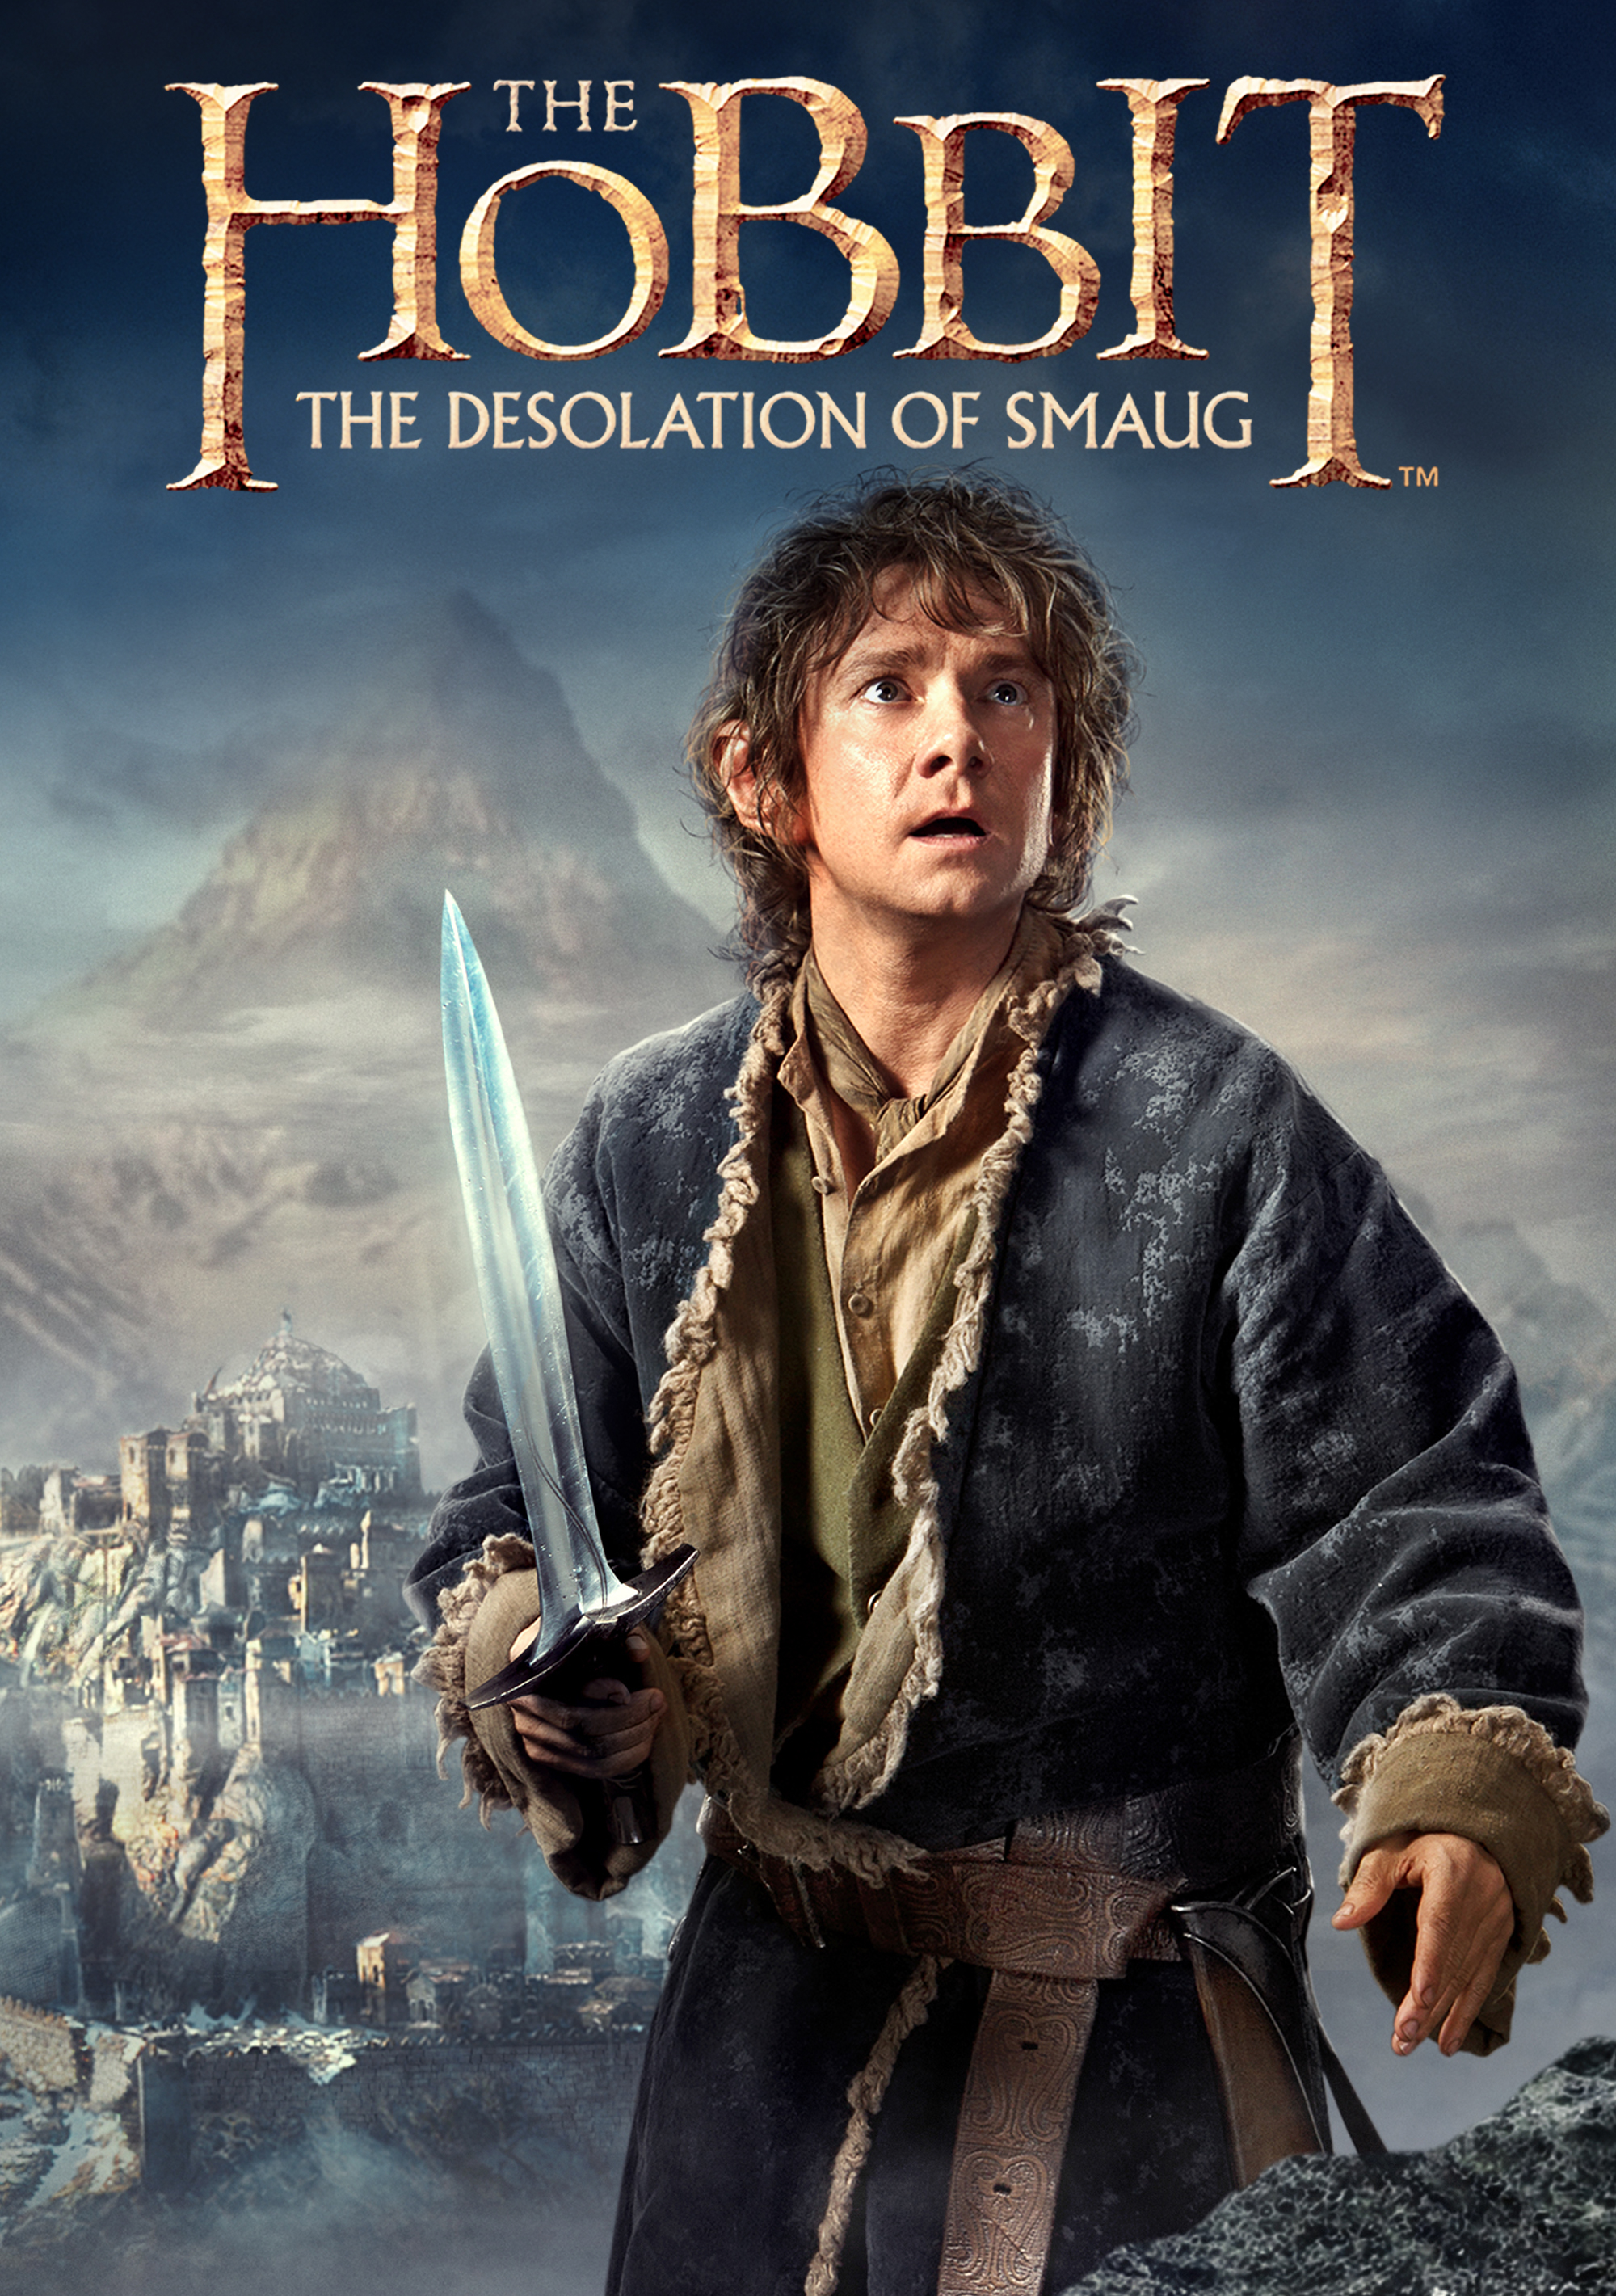 The Hobbit: The Desolation of Smaug: Xbox SmartGlass